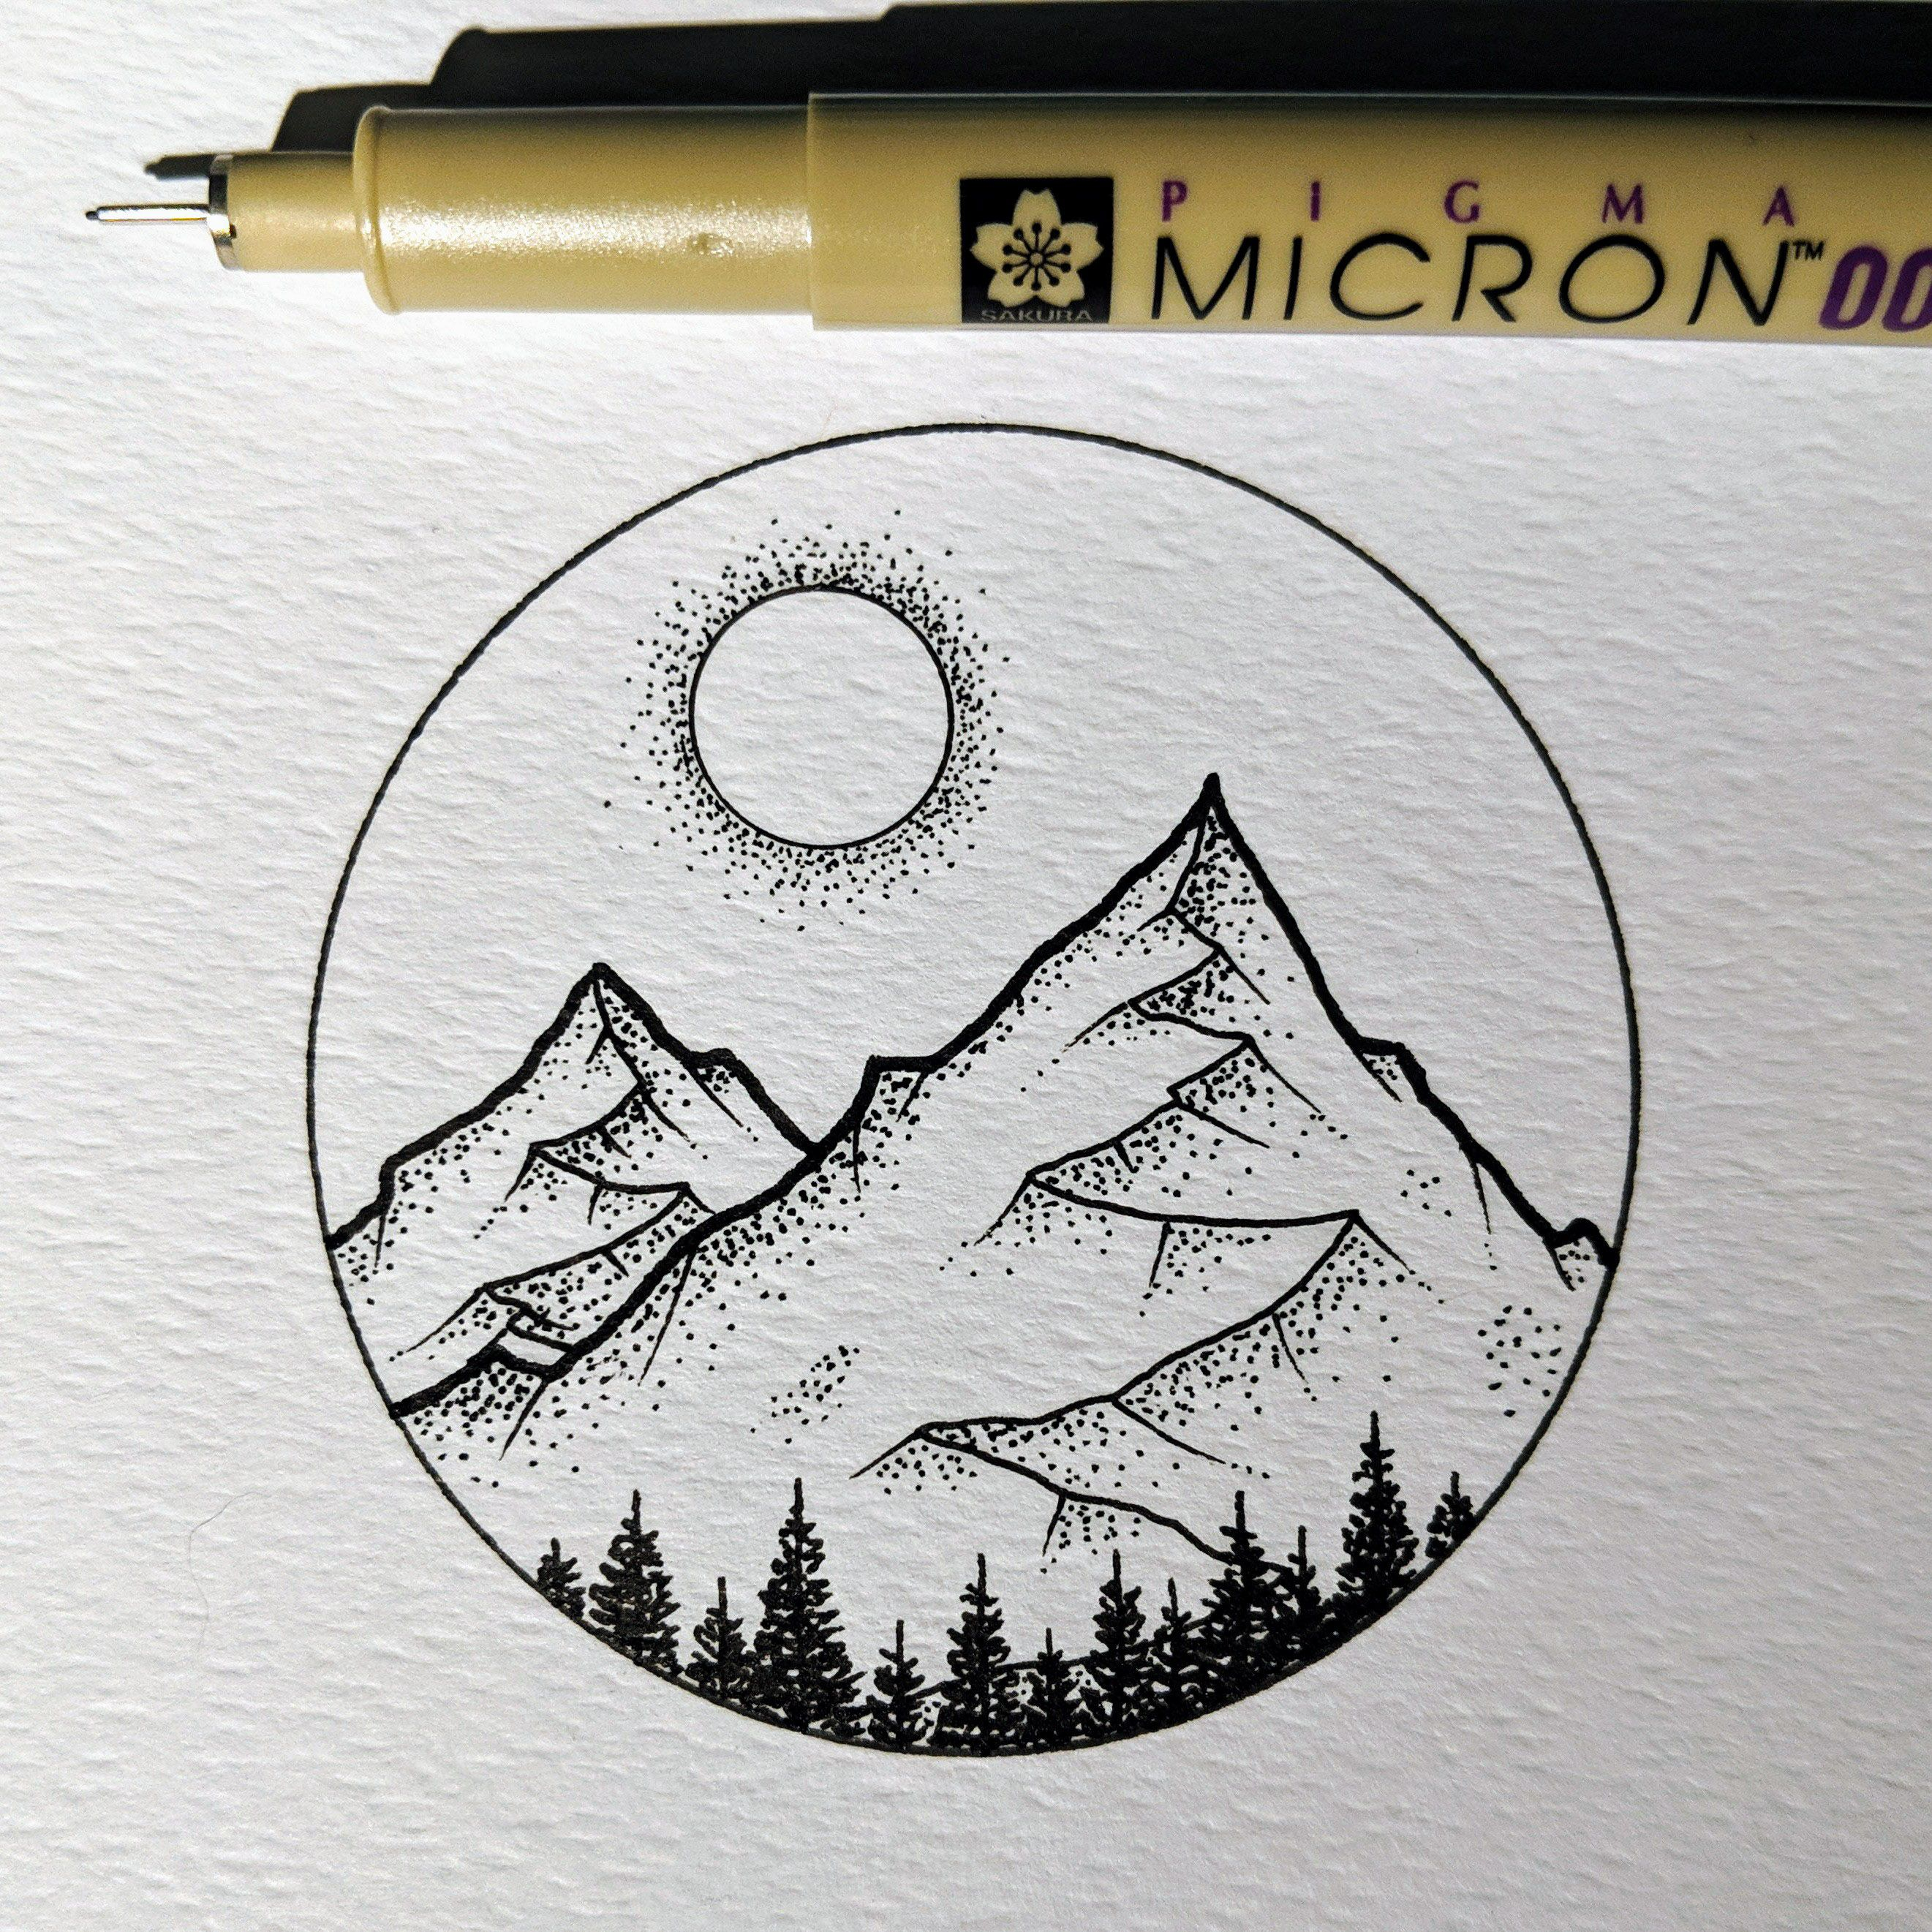 The Great Outdoors - micron pen drawing #thegreatoutdoors